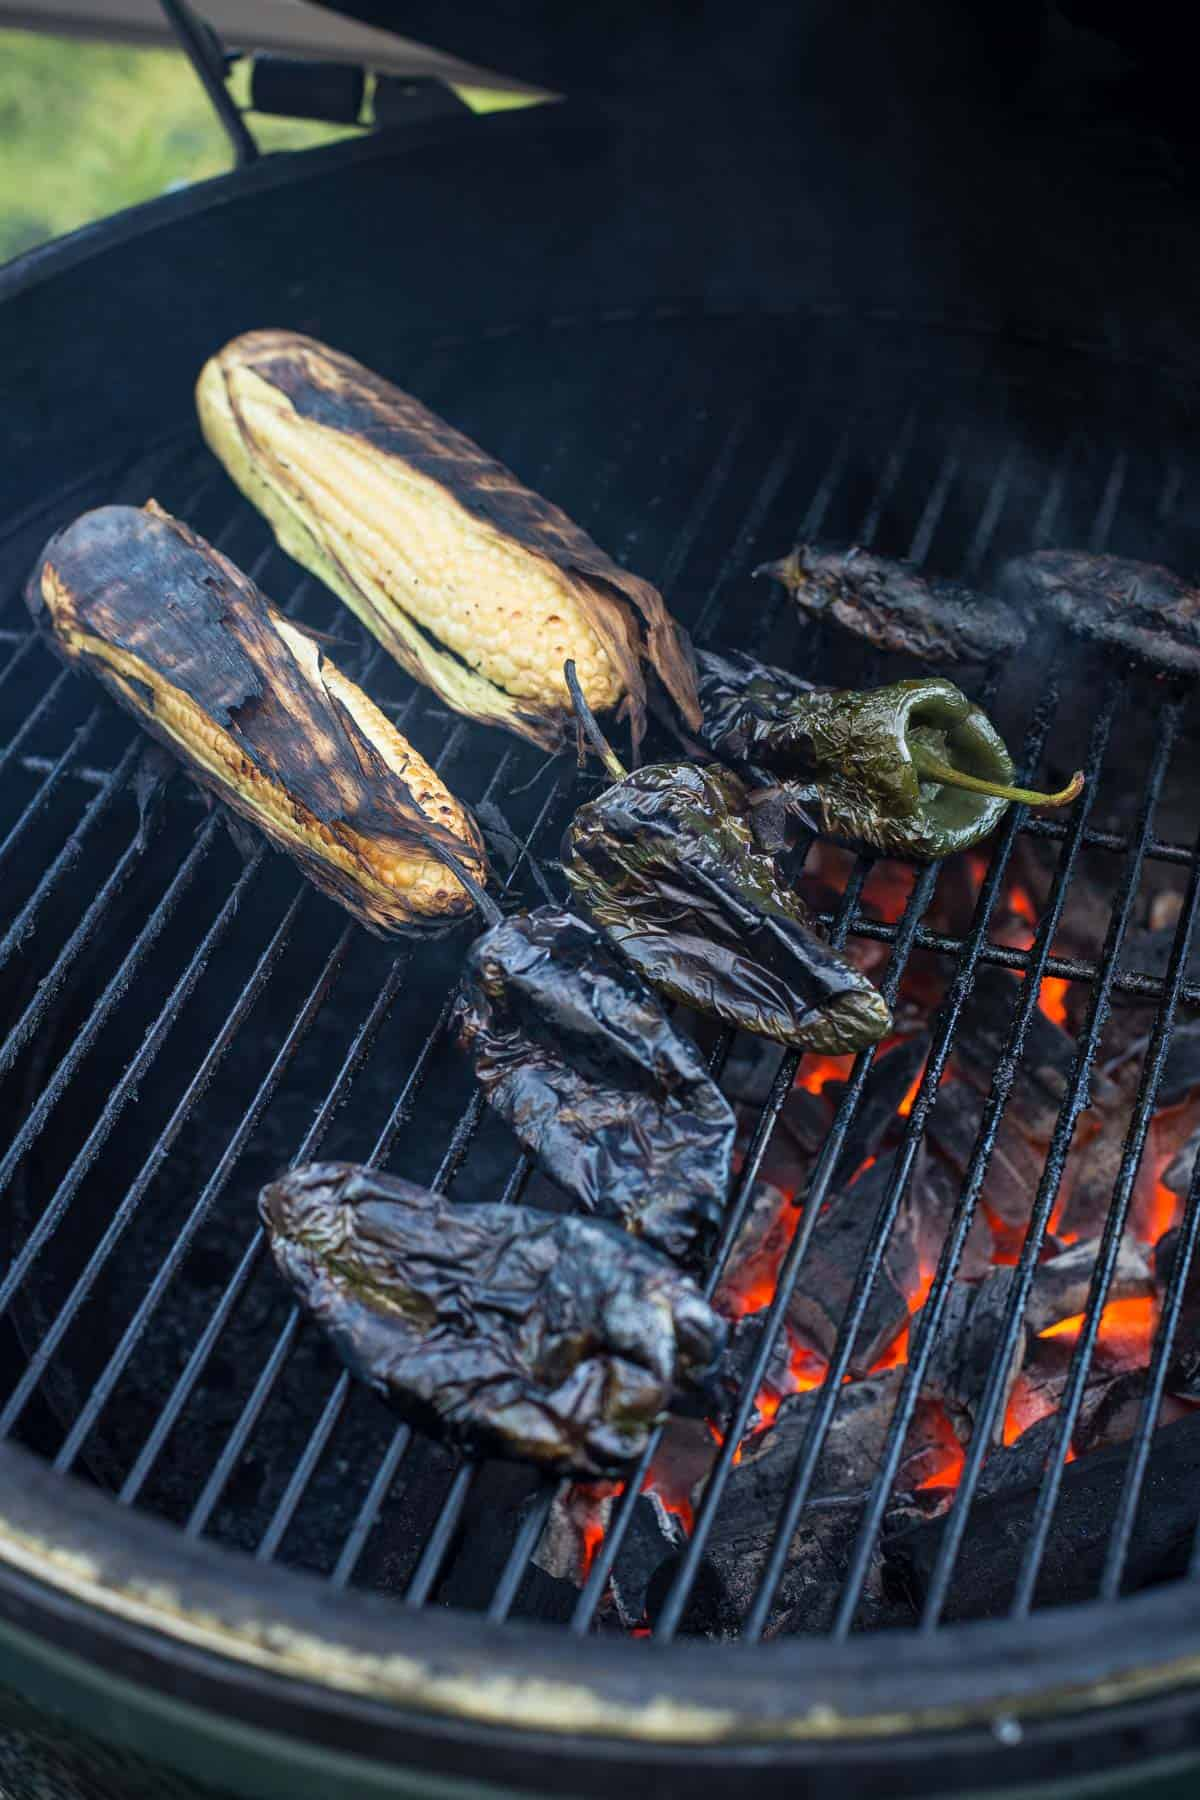 roasted poblano peppers and corn on the grill.